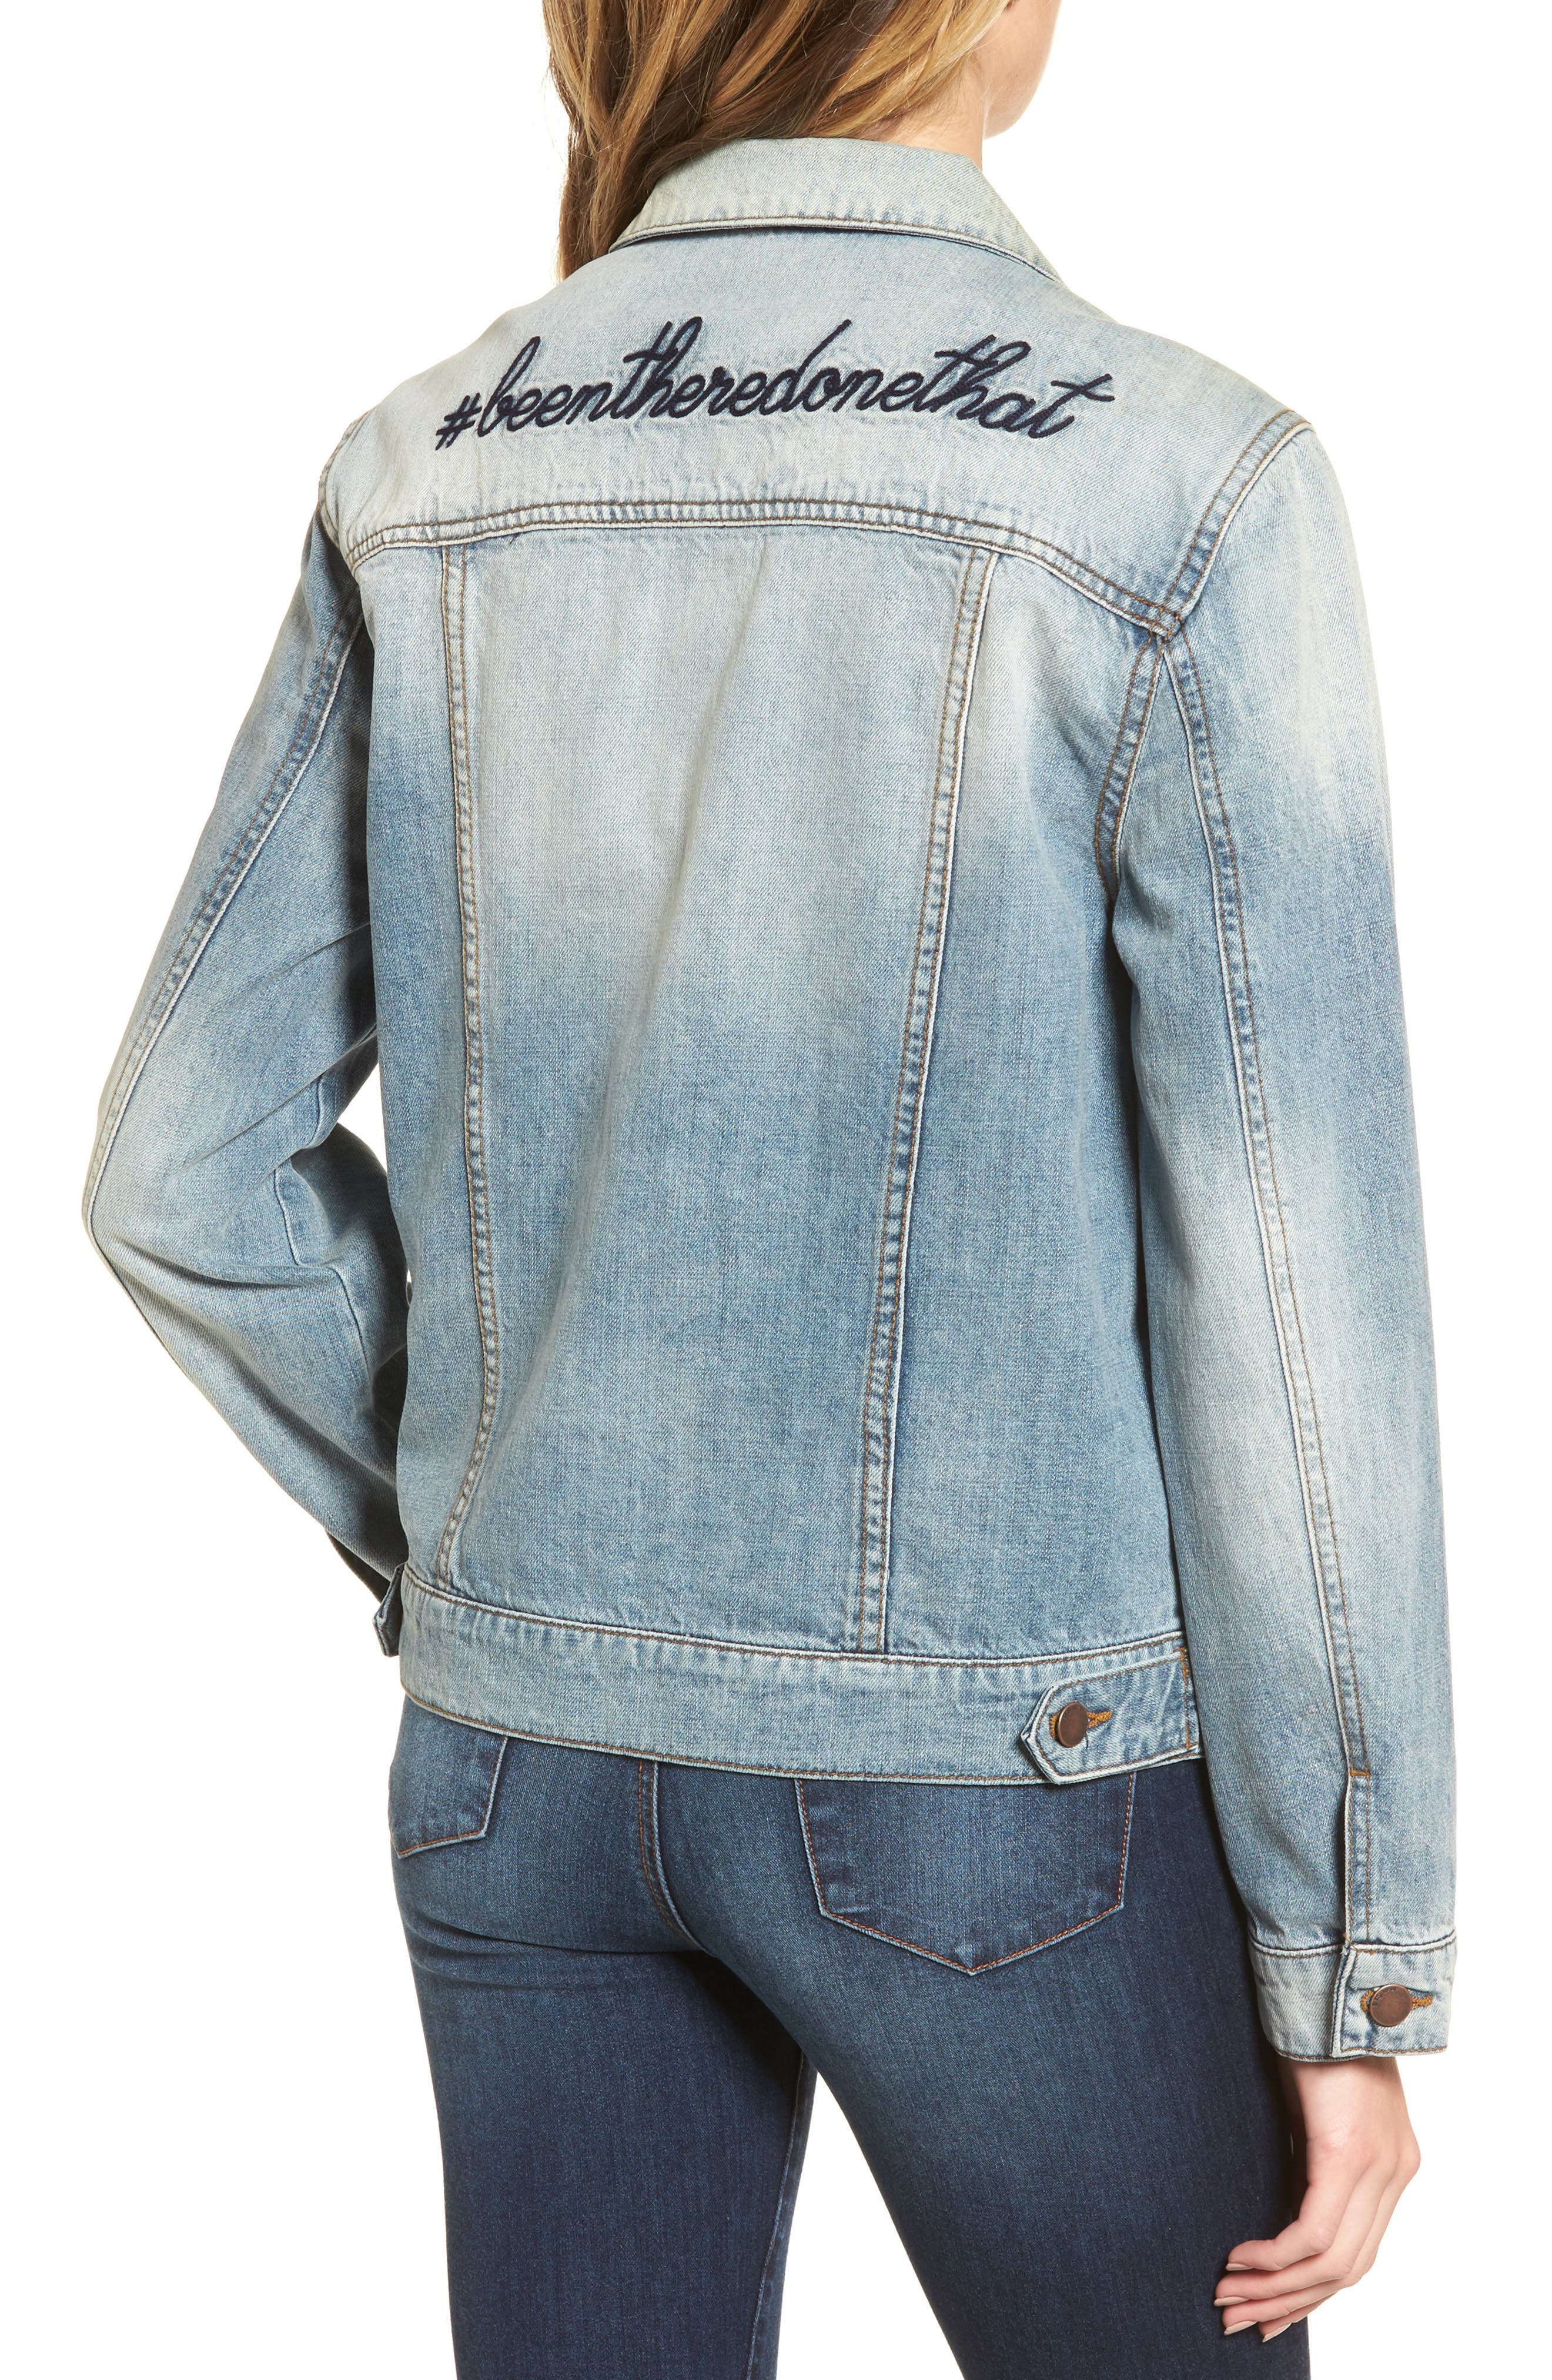 Been There Denim Jacket,                             Alternate thumbnail 2, color,                             400